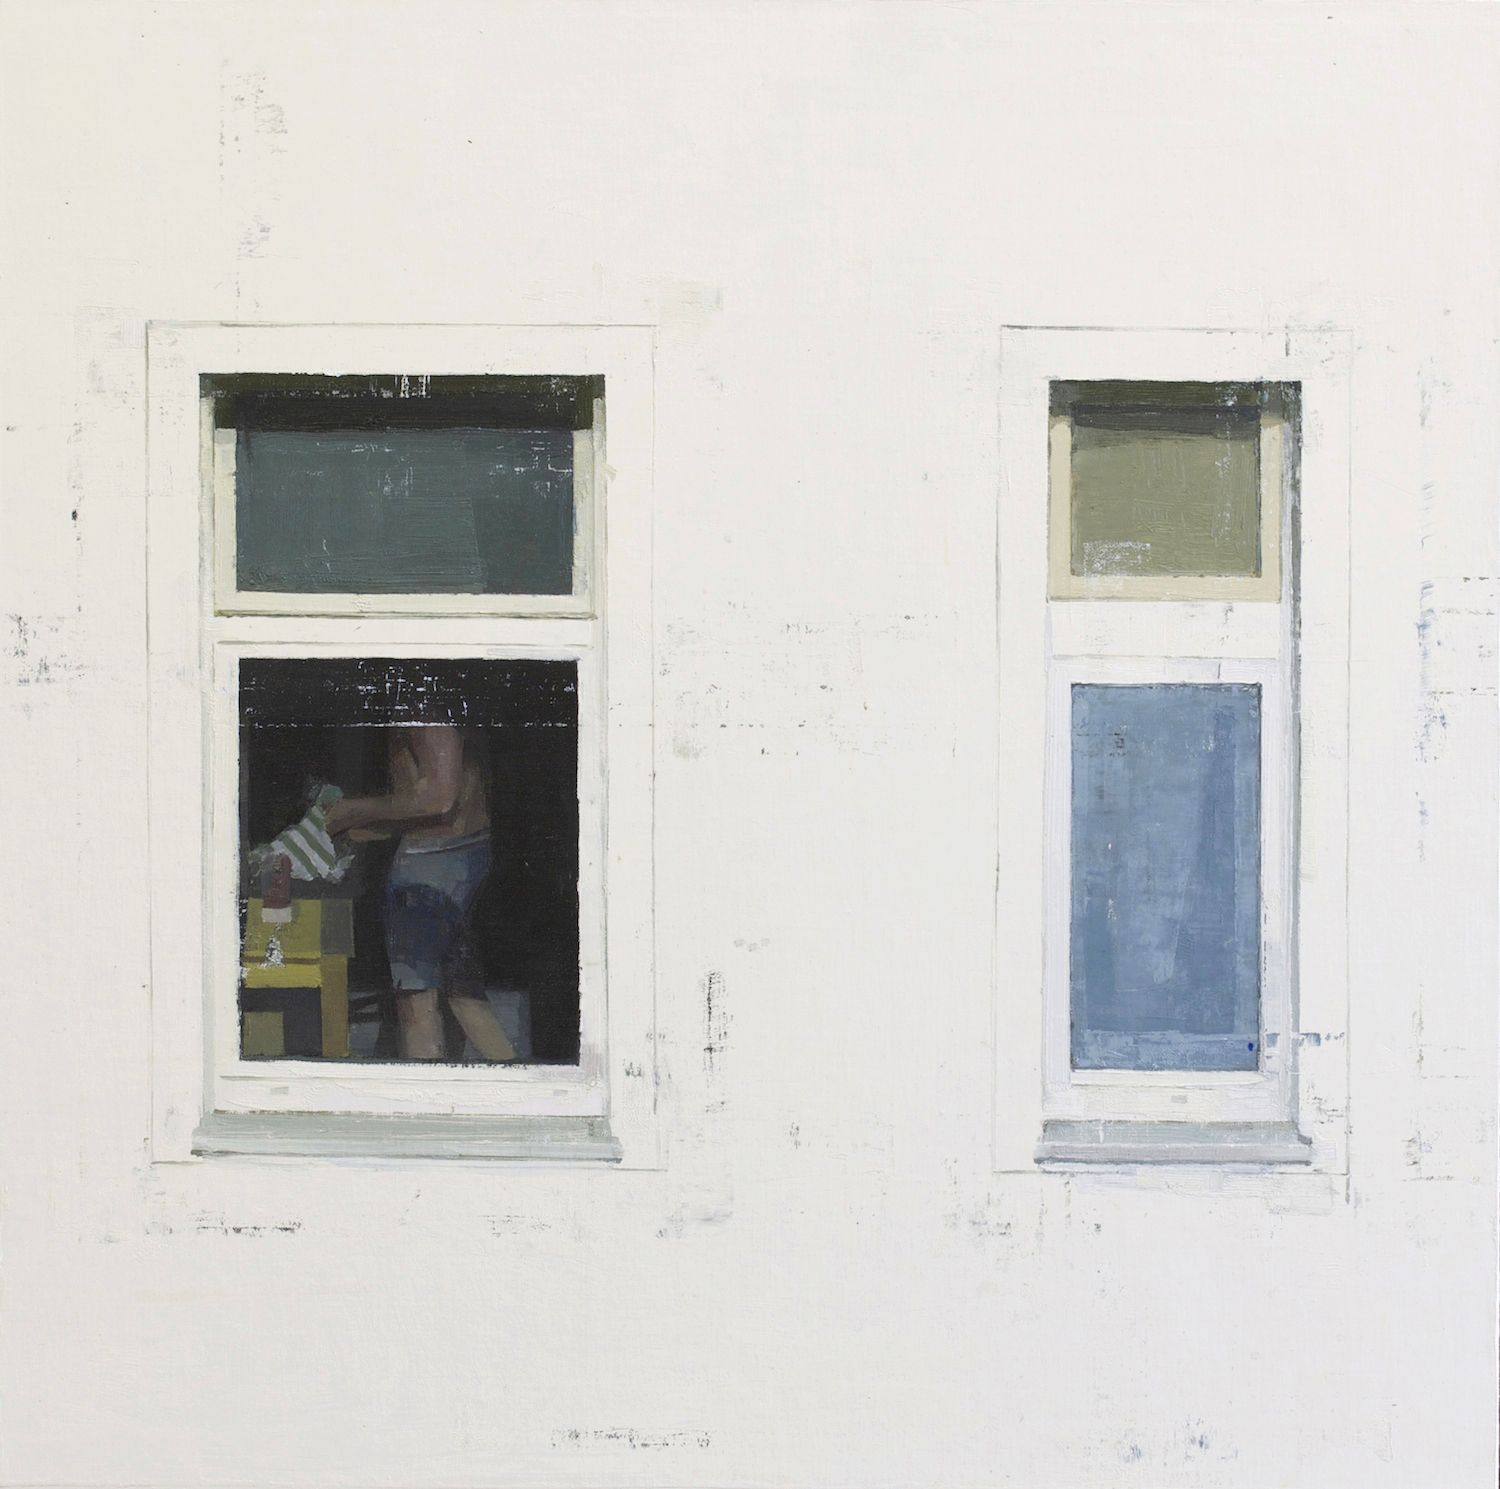 Zoey Frank, Berlin Window #3, 2018